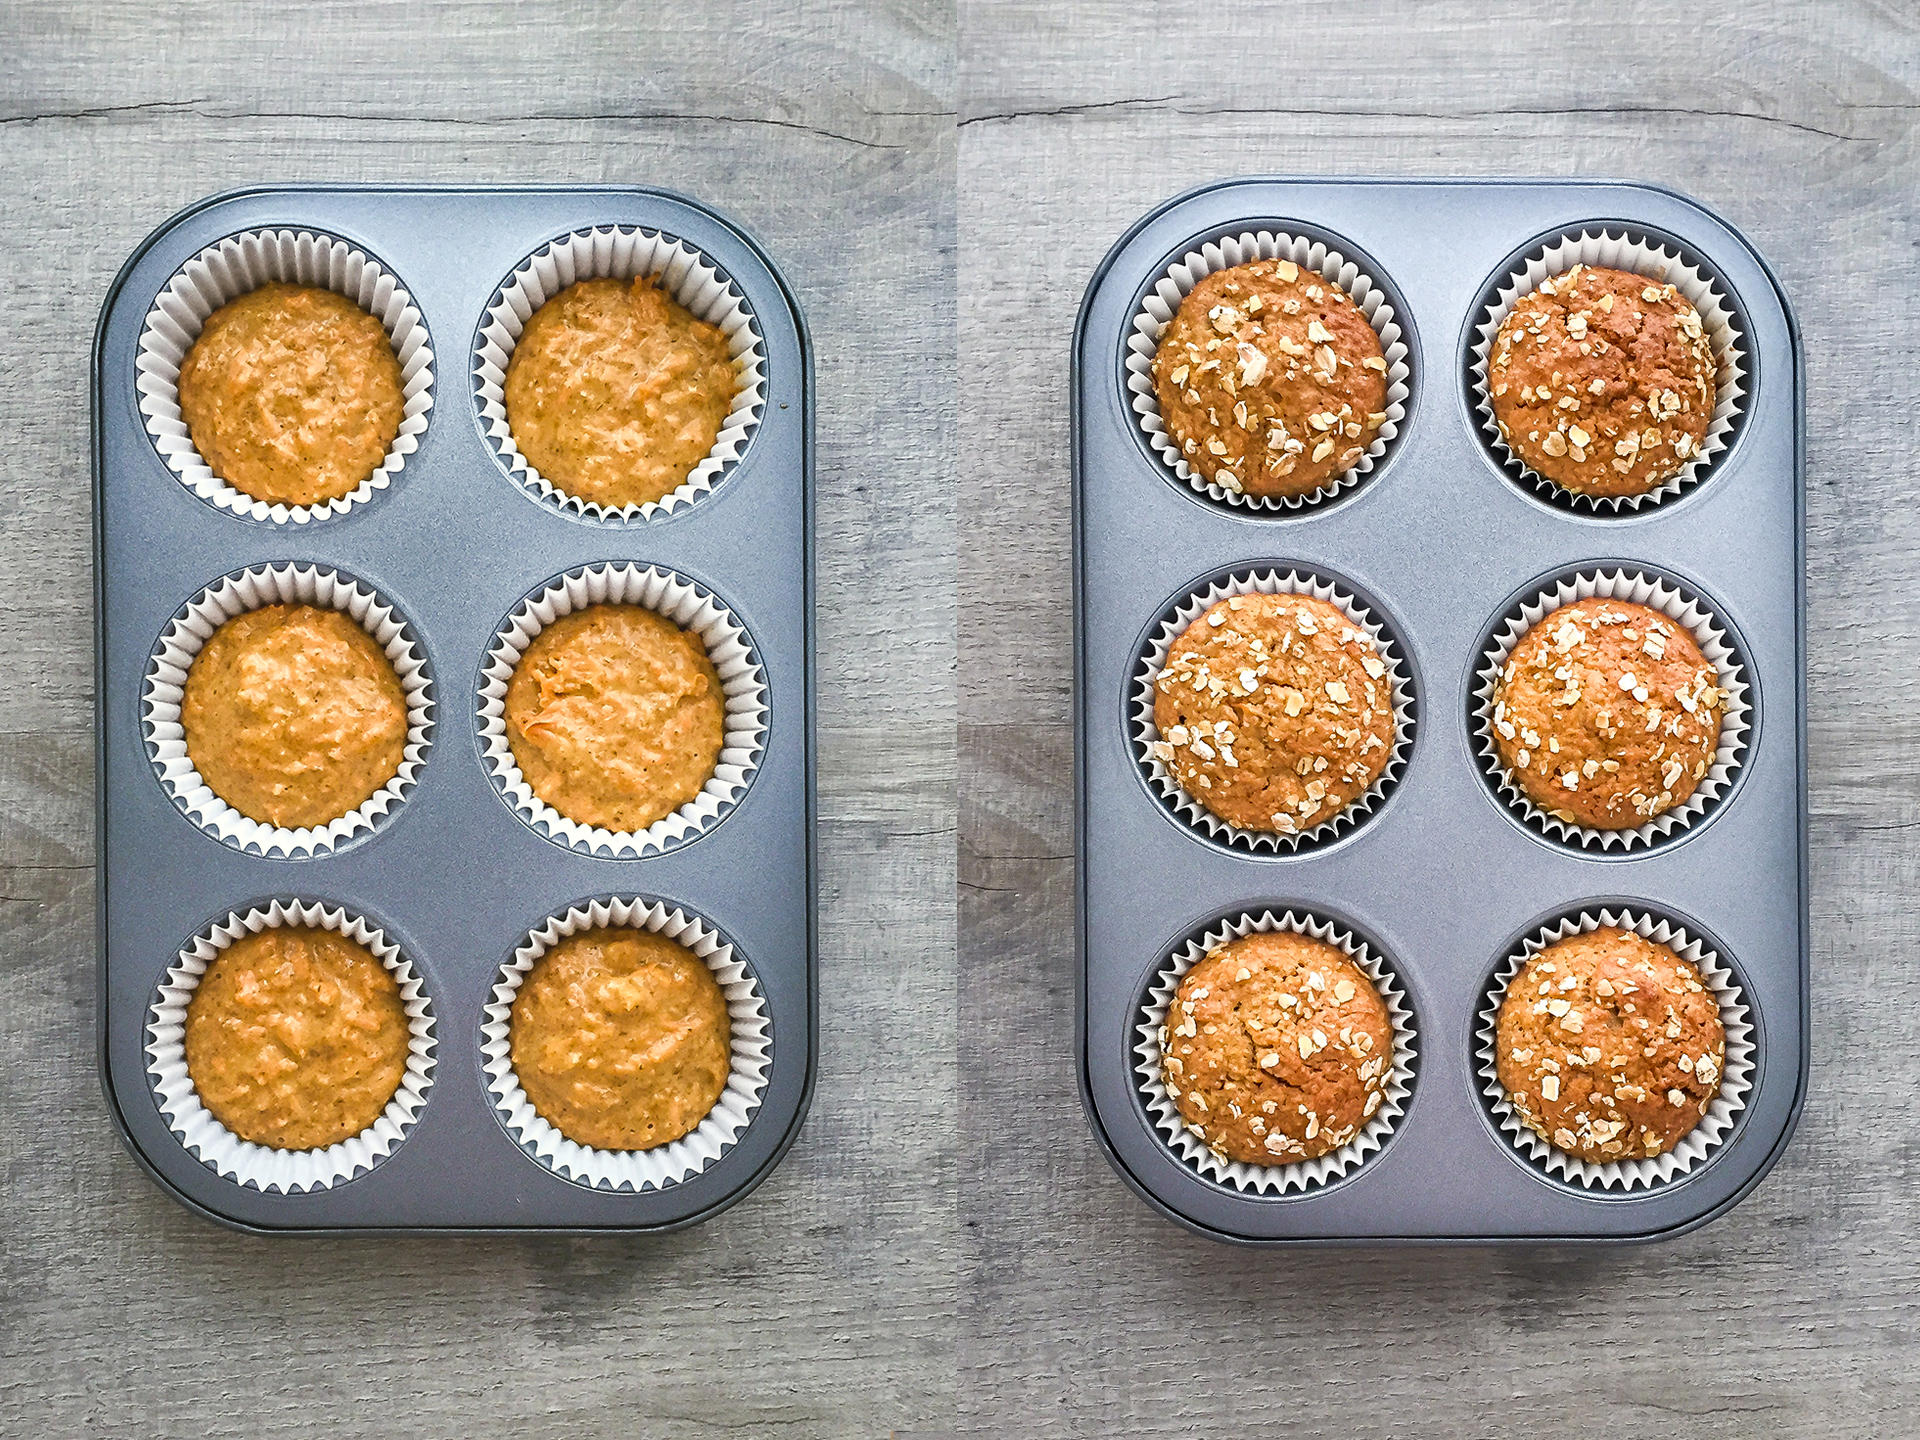 Step 3.1 of Dairy Free Carrot and Oat Muffins